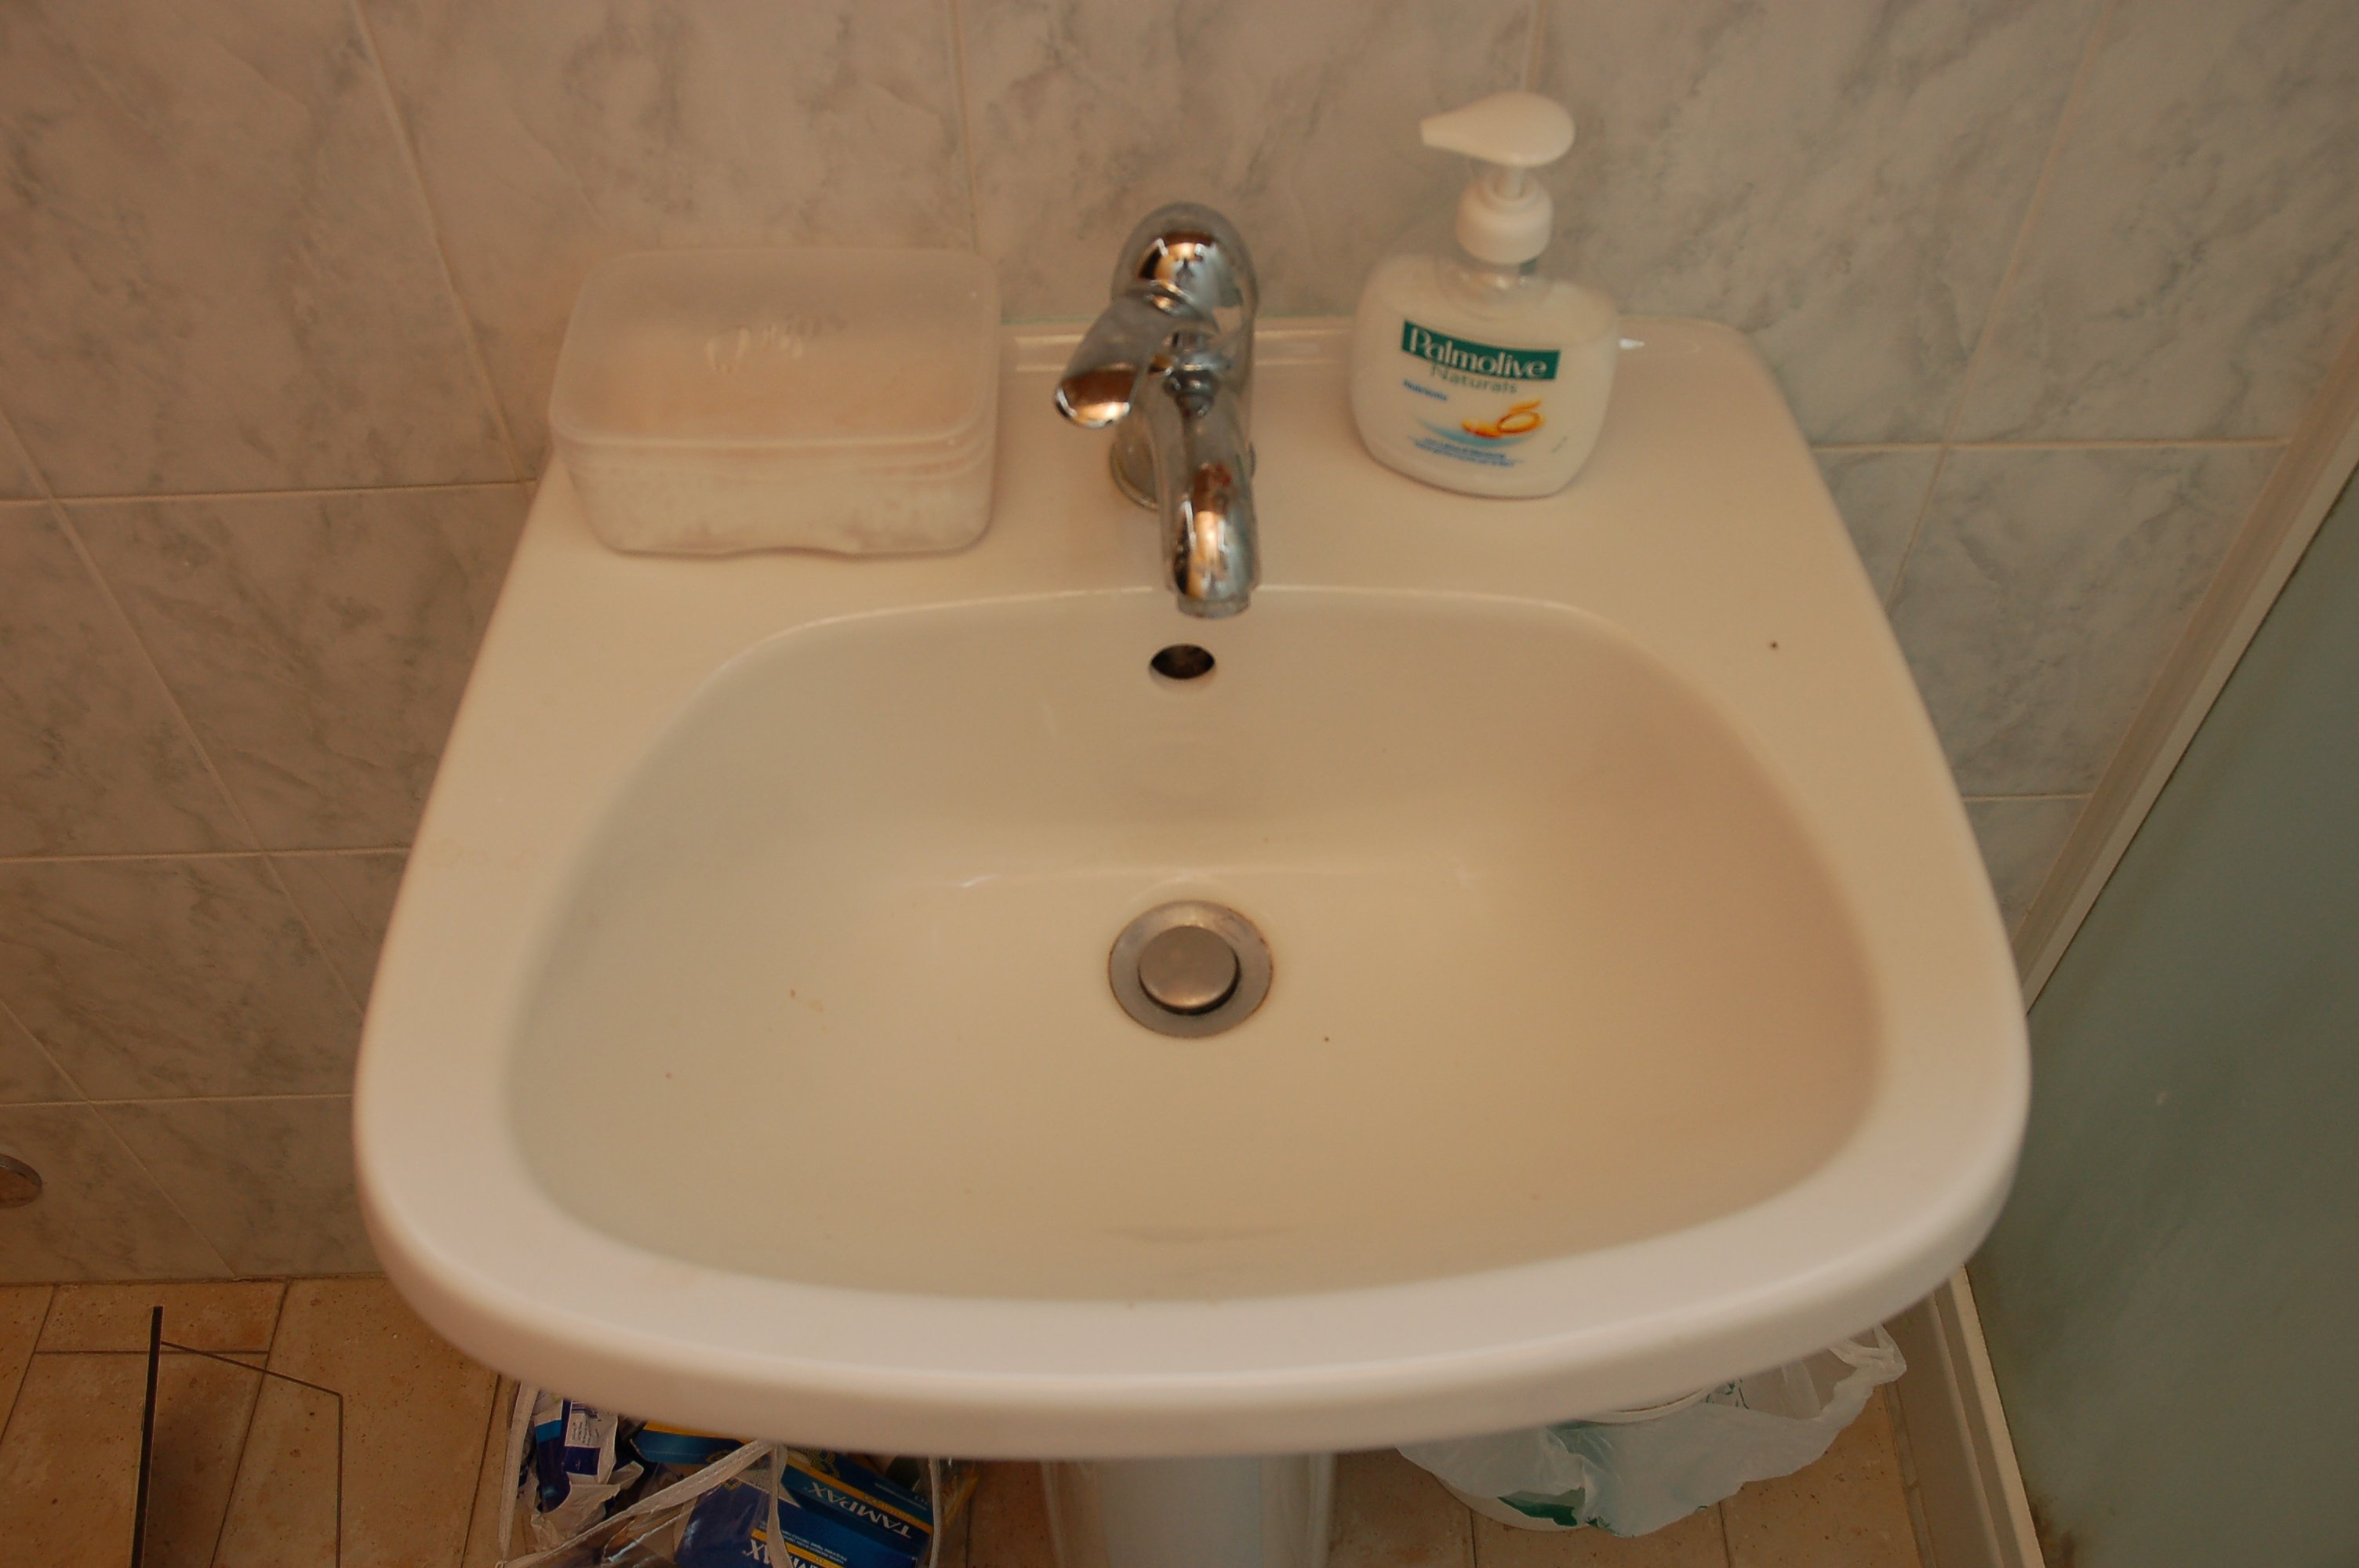 The sink with one Knox and two mixed traces. Mixed DNA   The Murder of Meredith Kercher